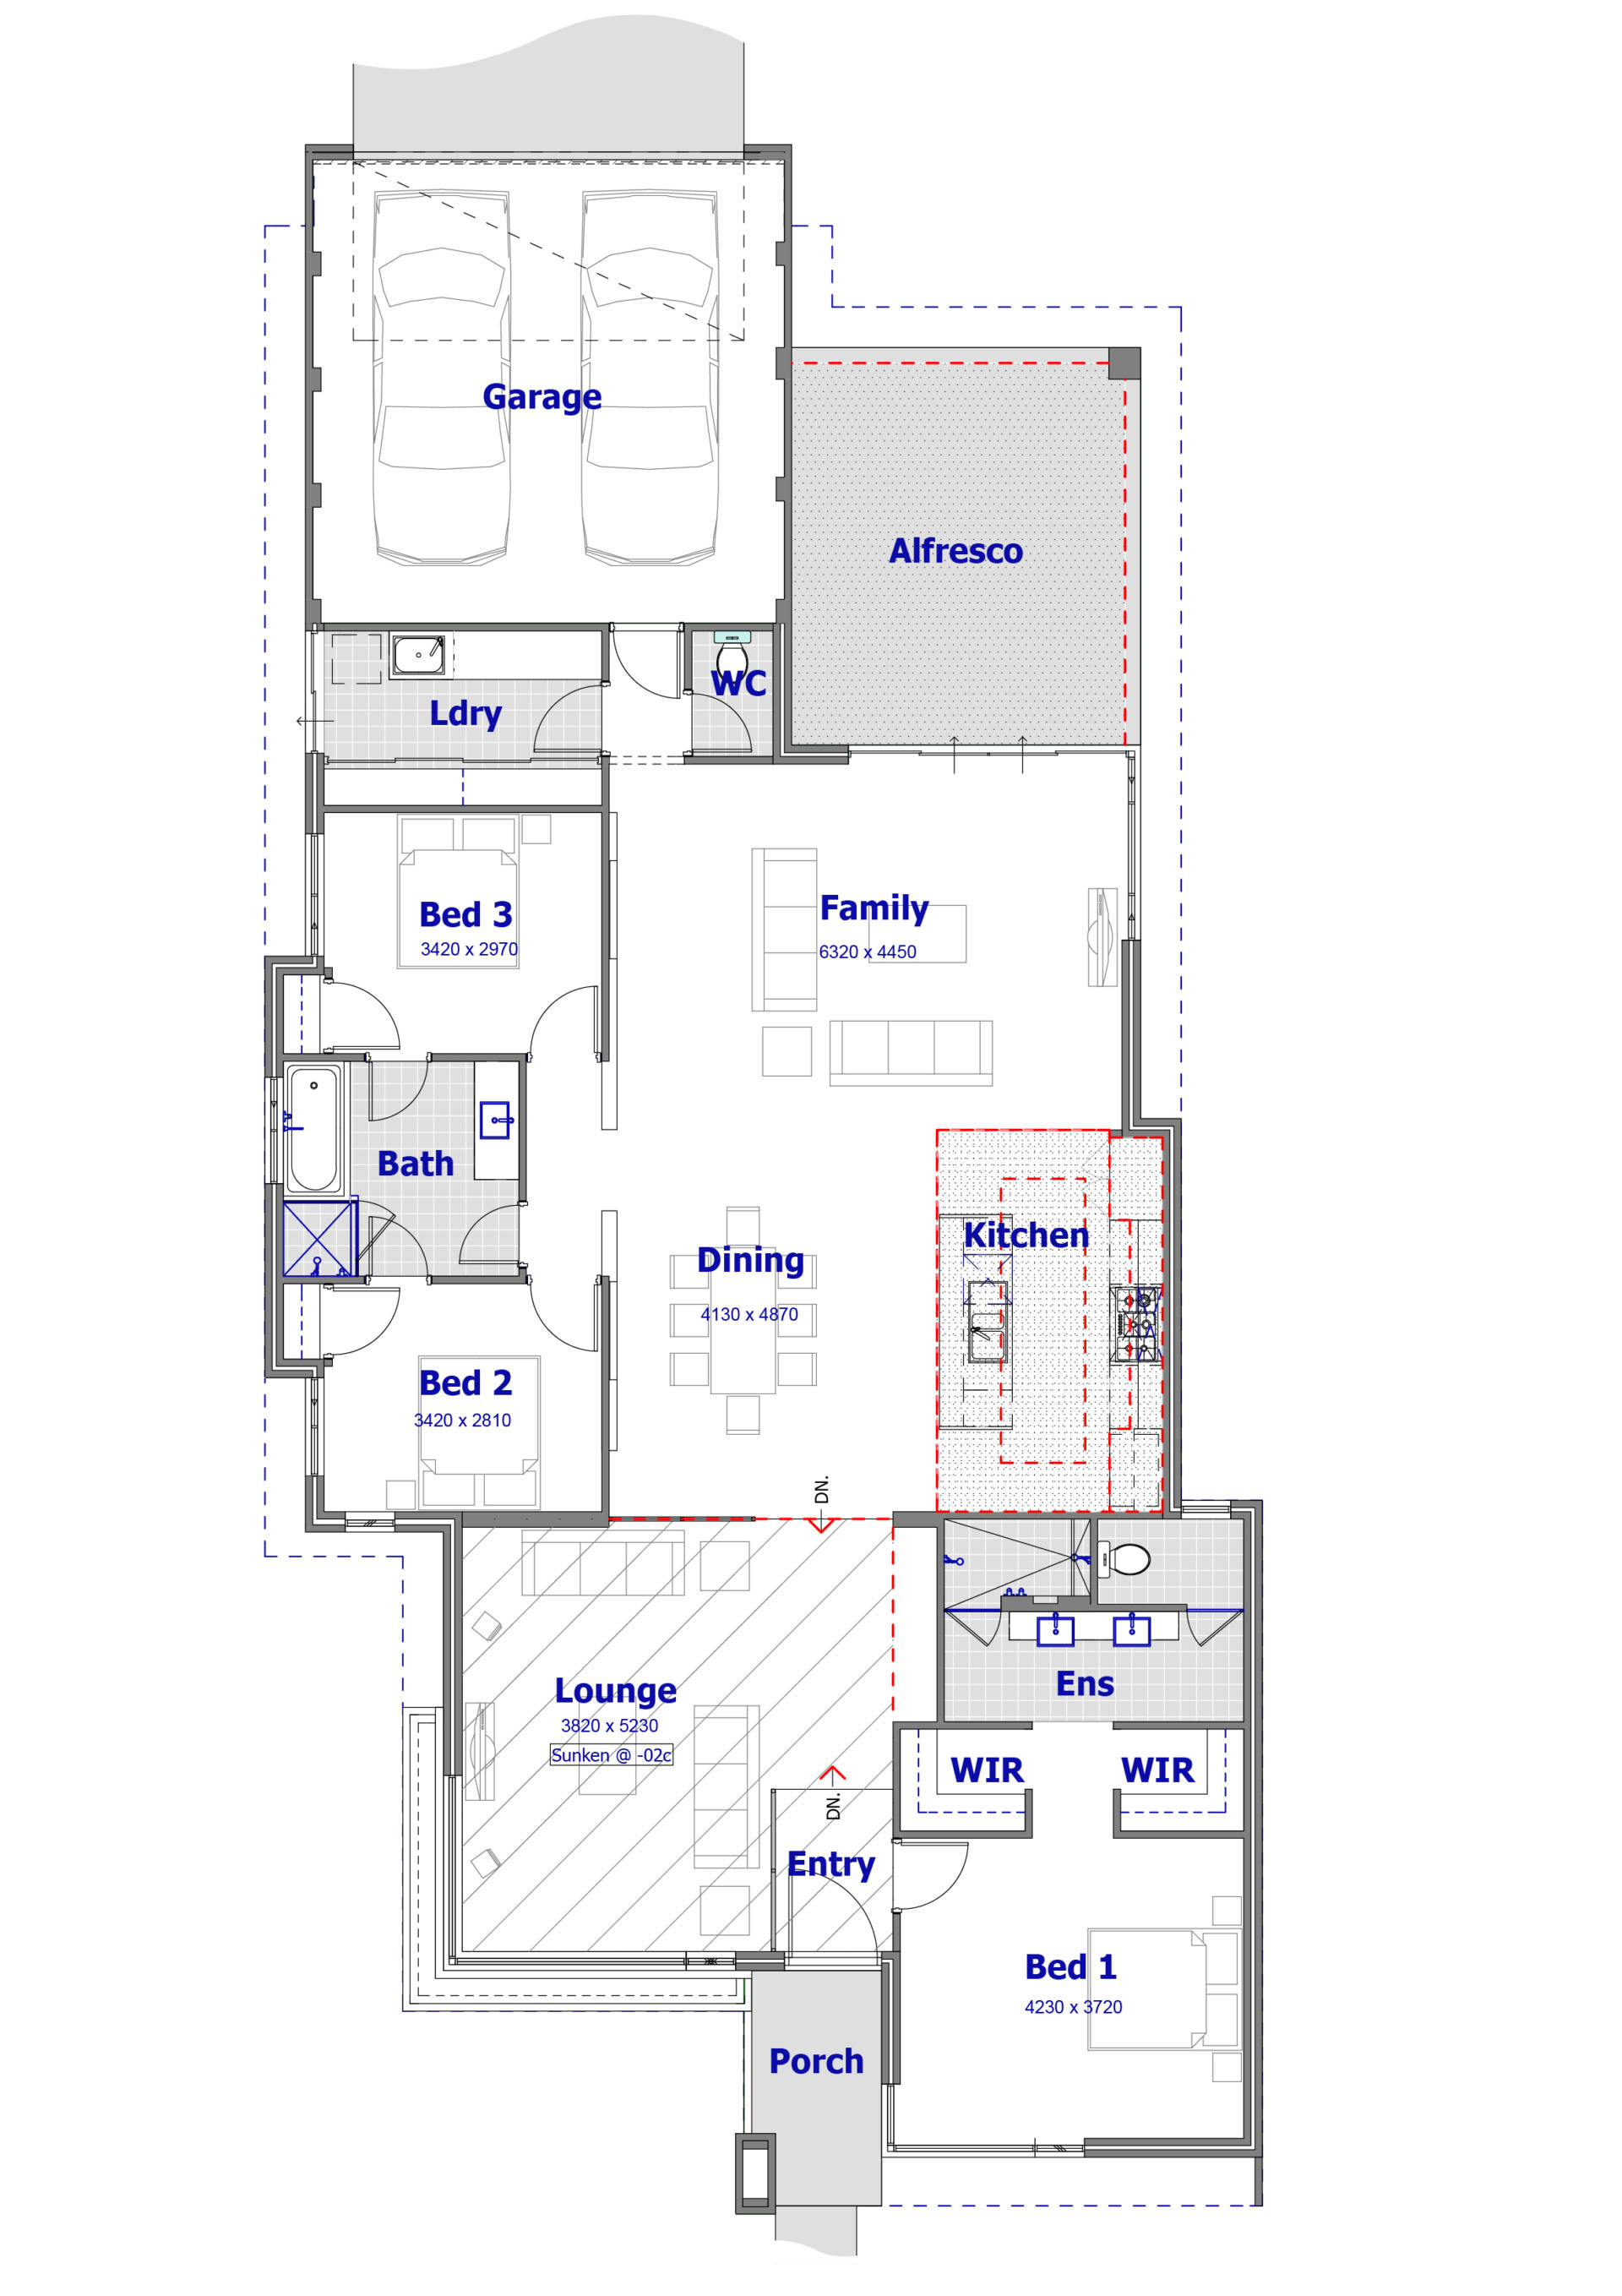 the architectural plan of the daisy house design with the furniture in the drawing view. Top. Accommodation with kitchen, living room, bedroom amd garage